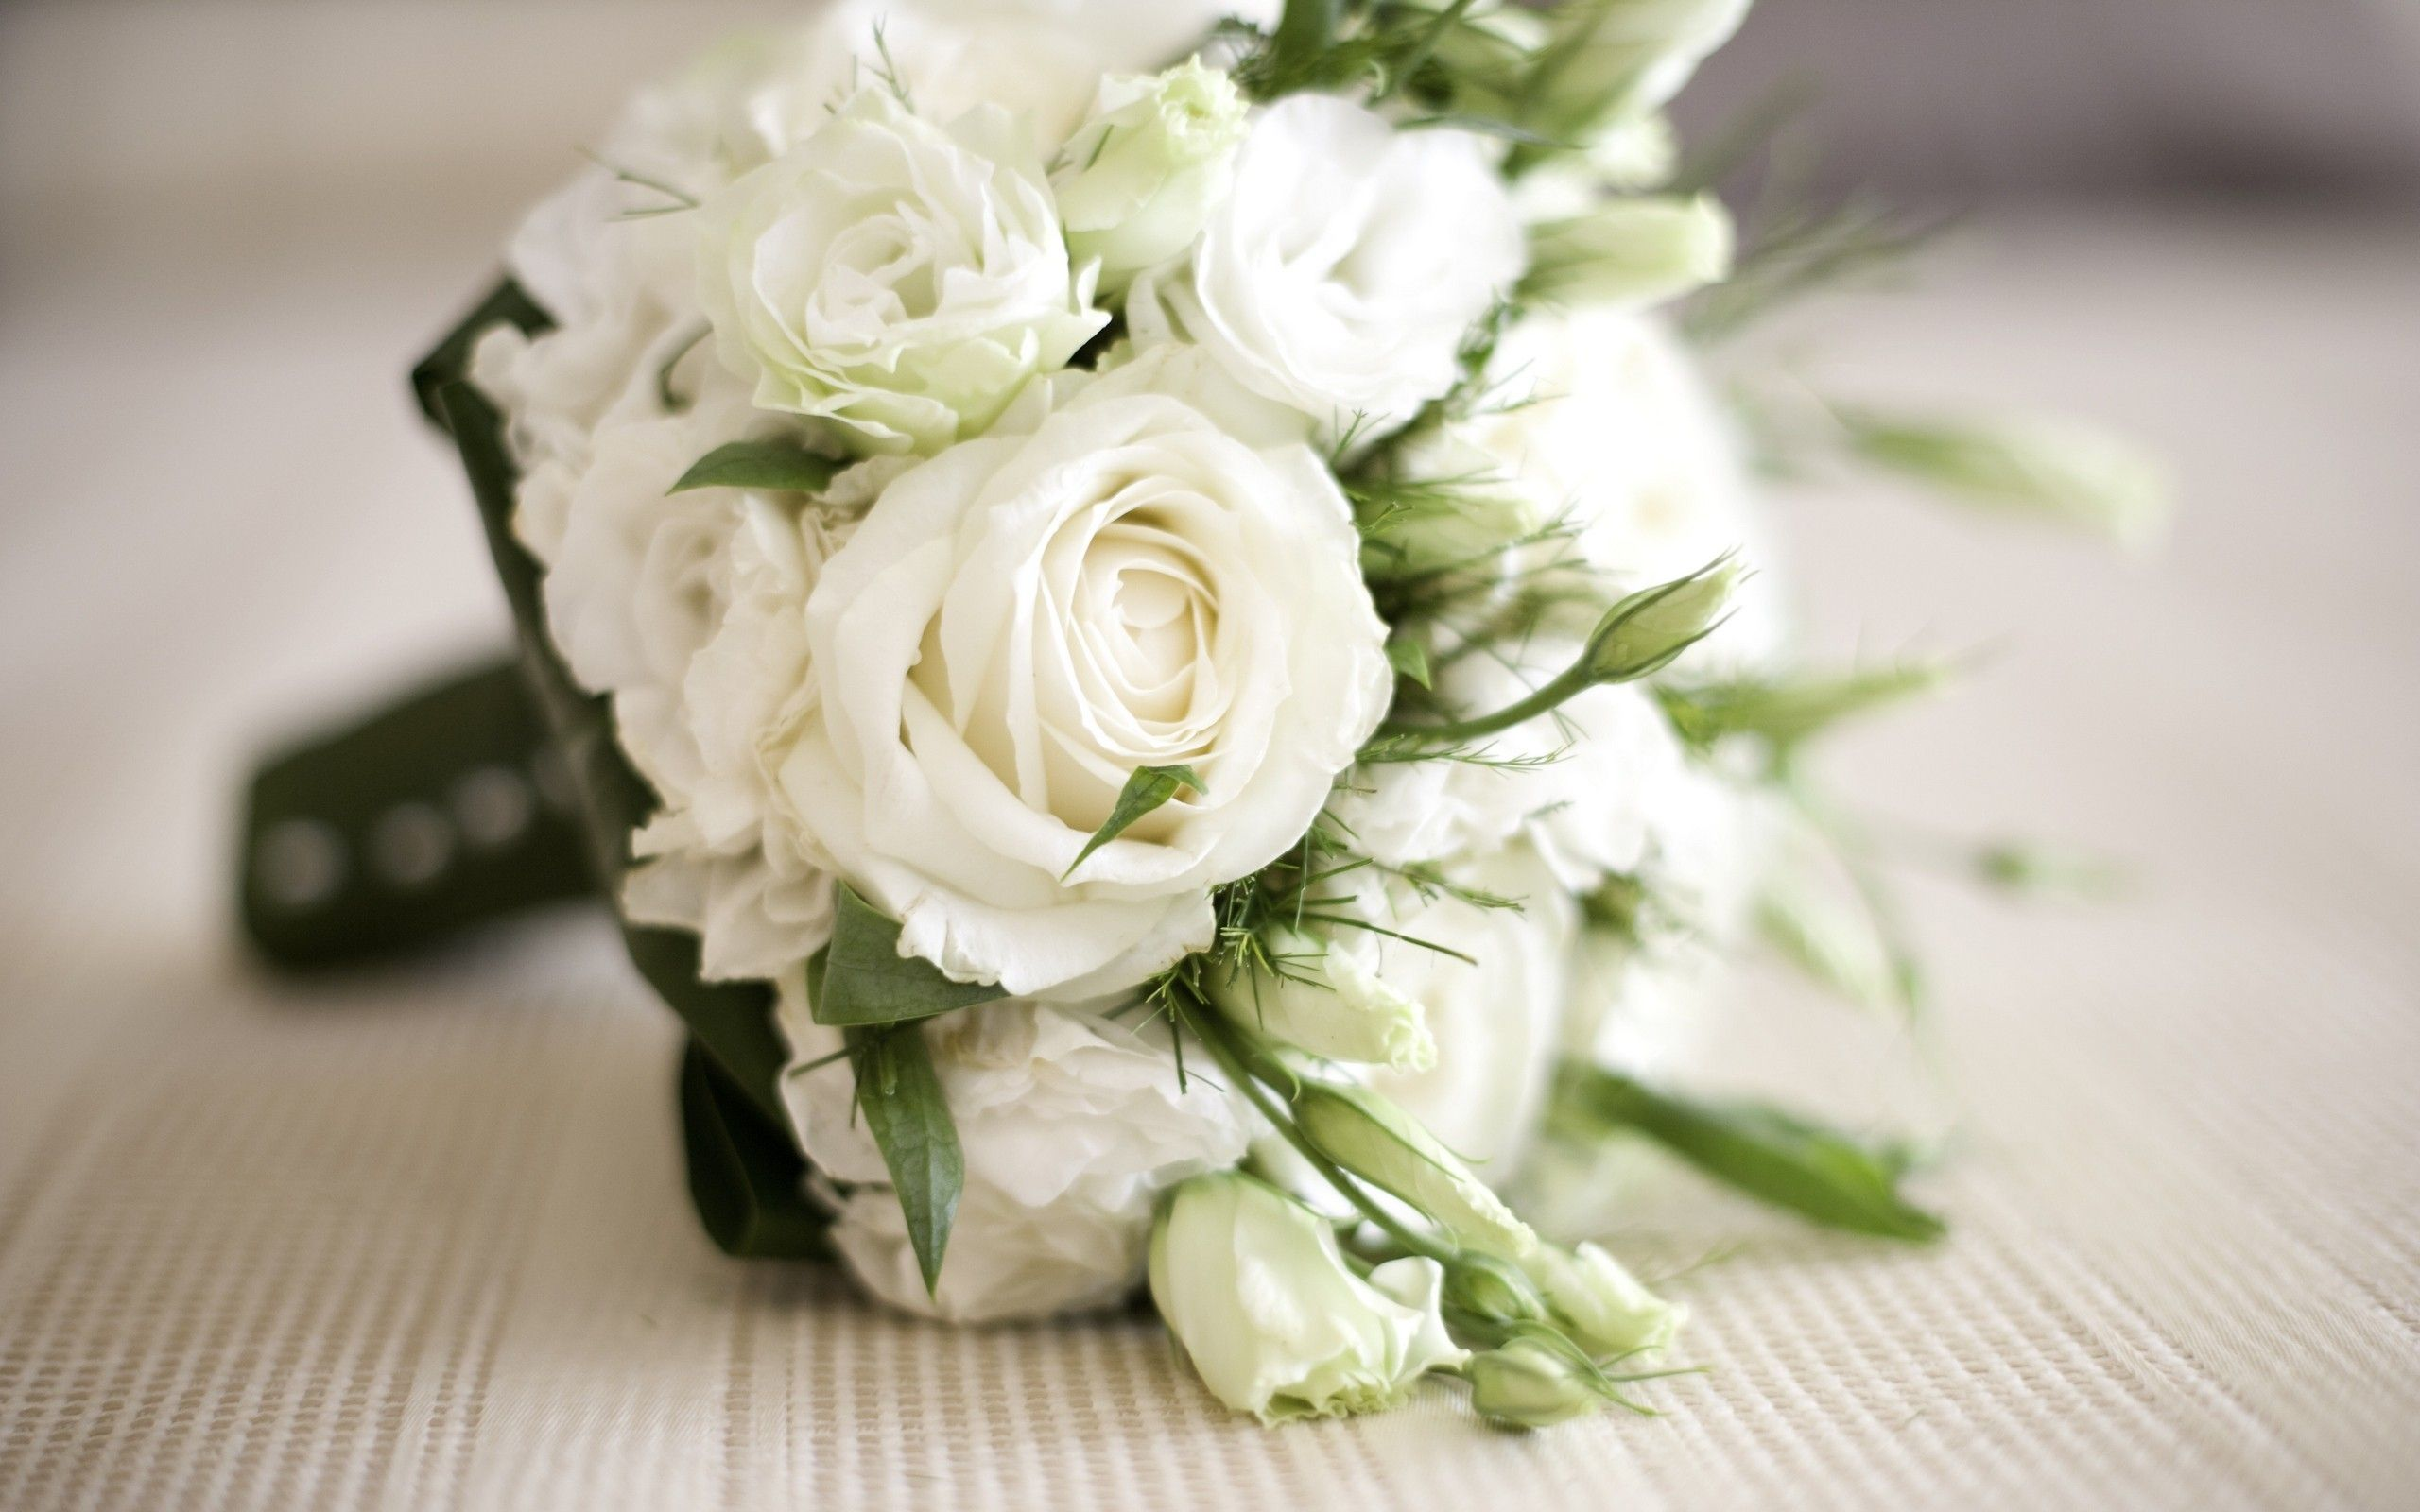 Online Flowers For Housewarming Same Day Delivery White Roses White Rose Bouquet White Roses Wallpaper